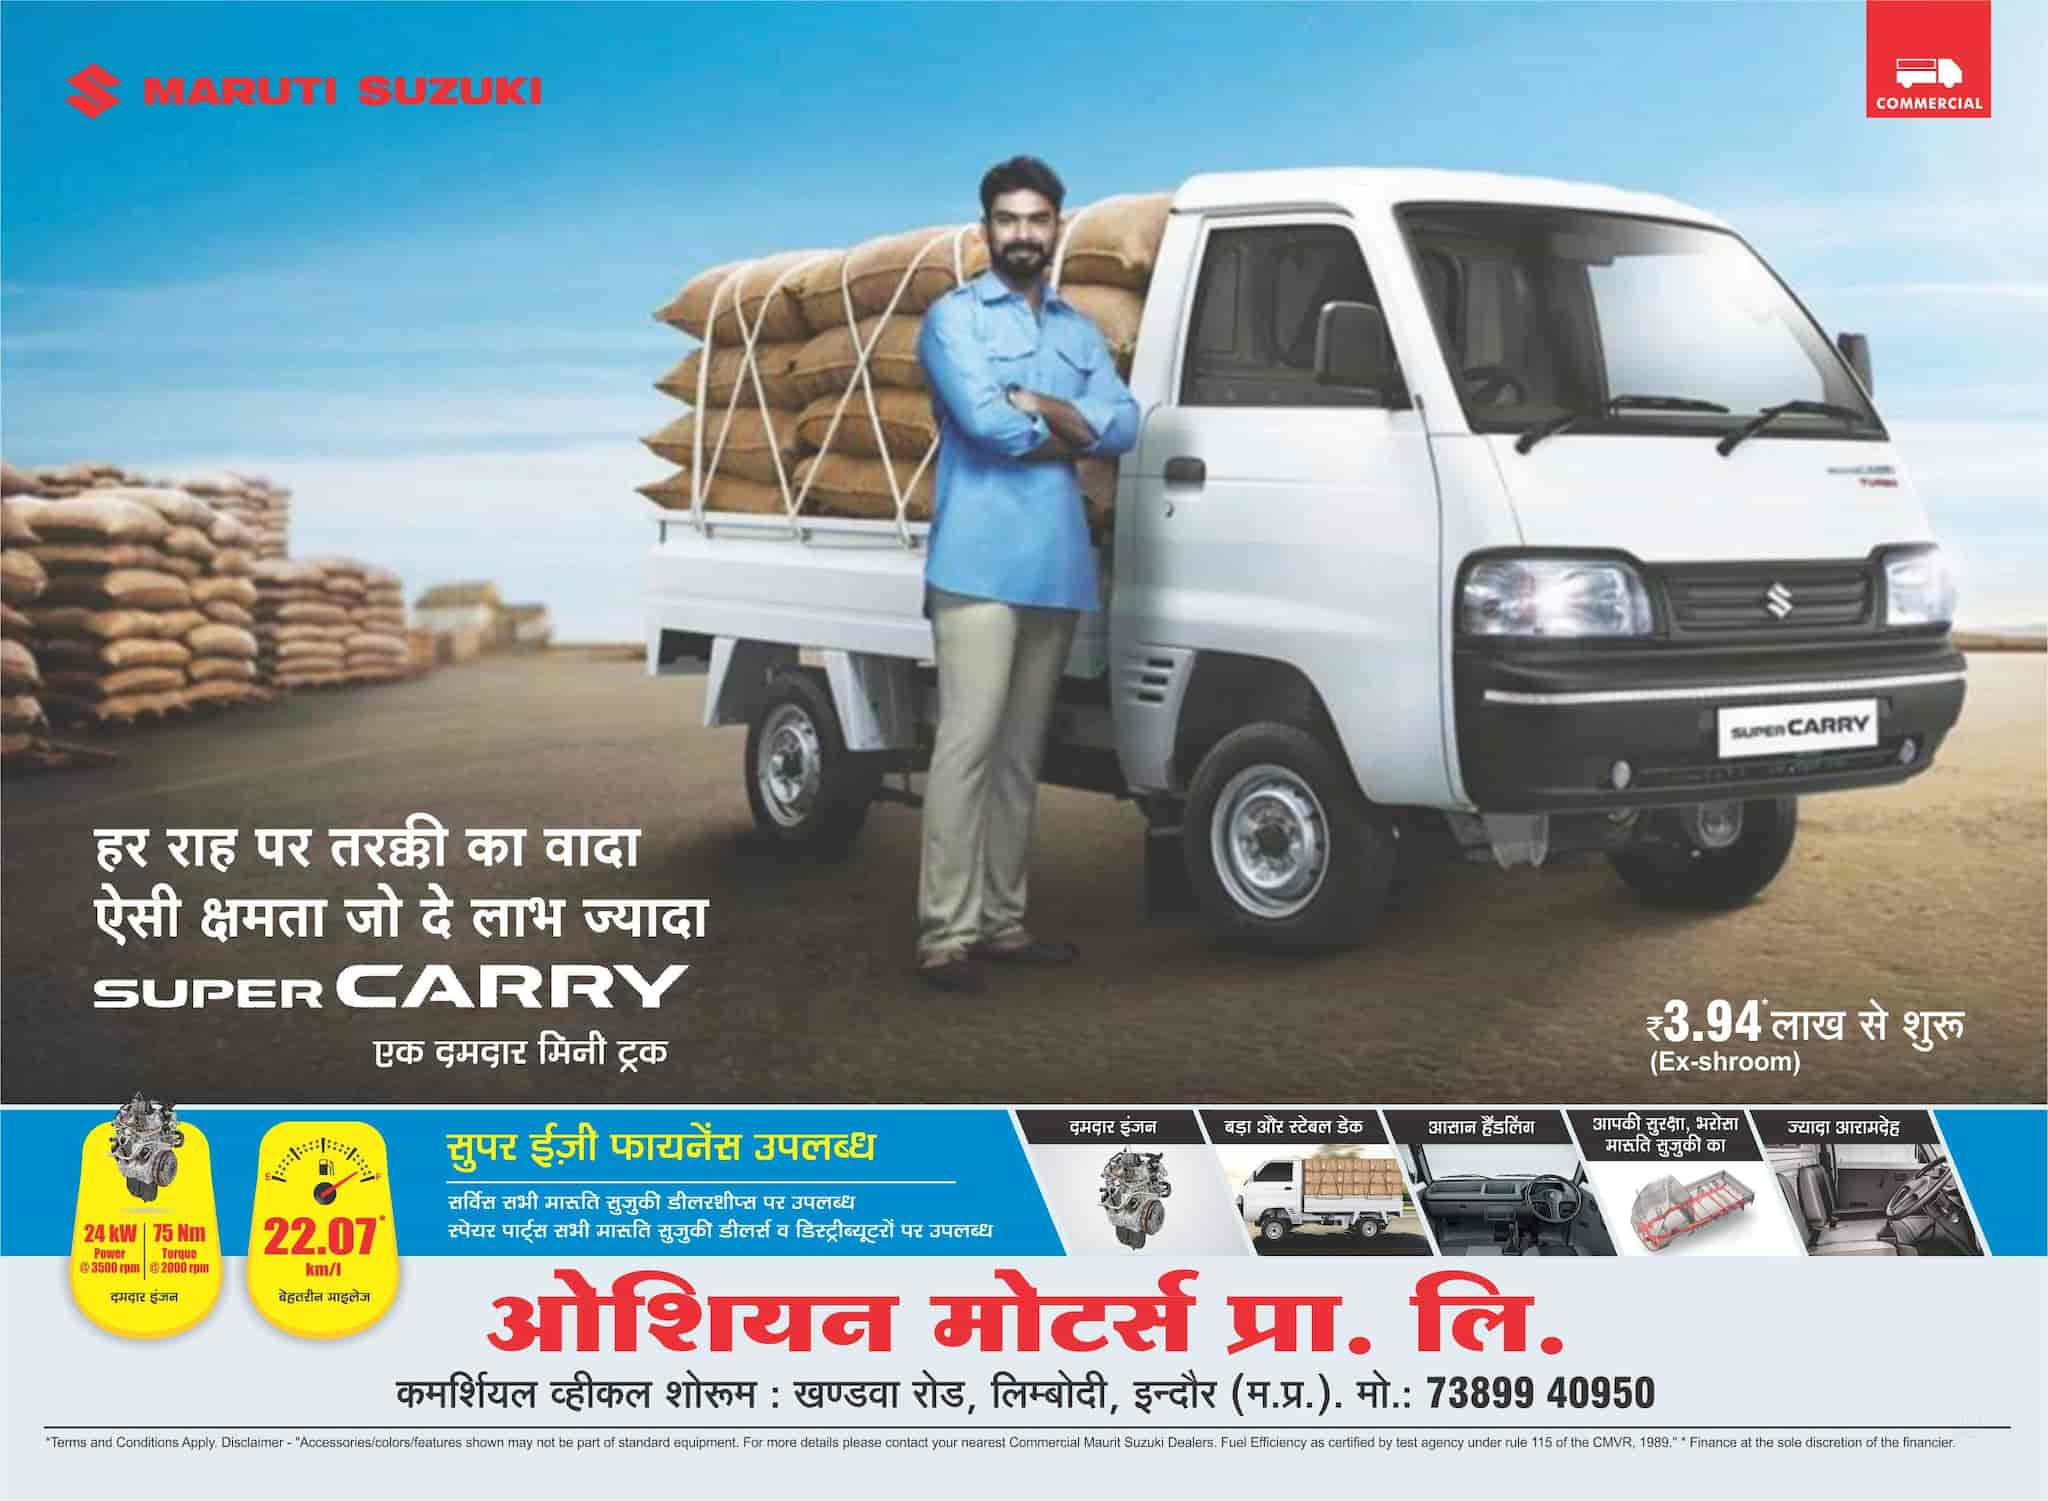 Ocean Motors Pvt Ltd Khandwa Road Lcv Dealers Maruti Suzuki